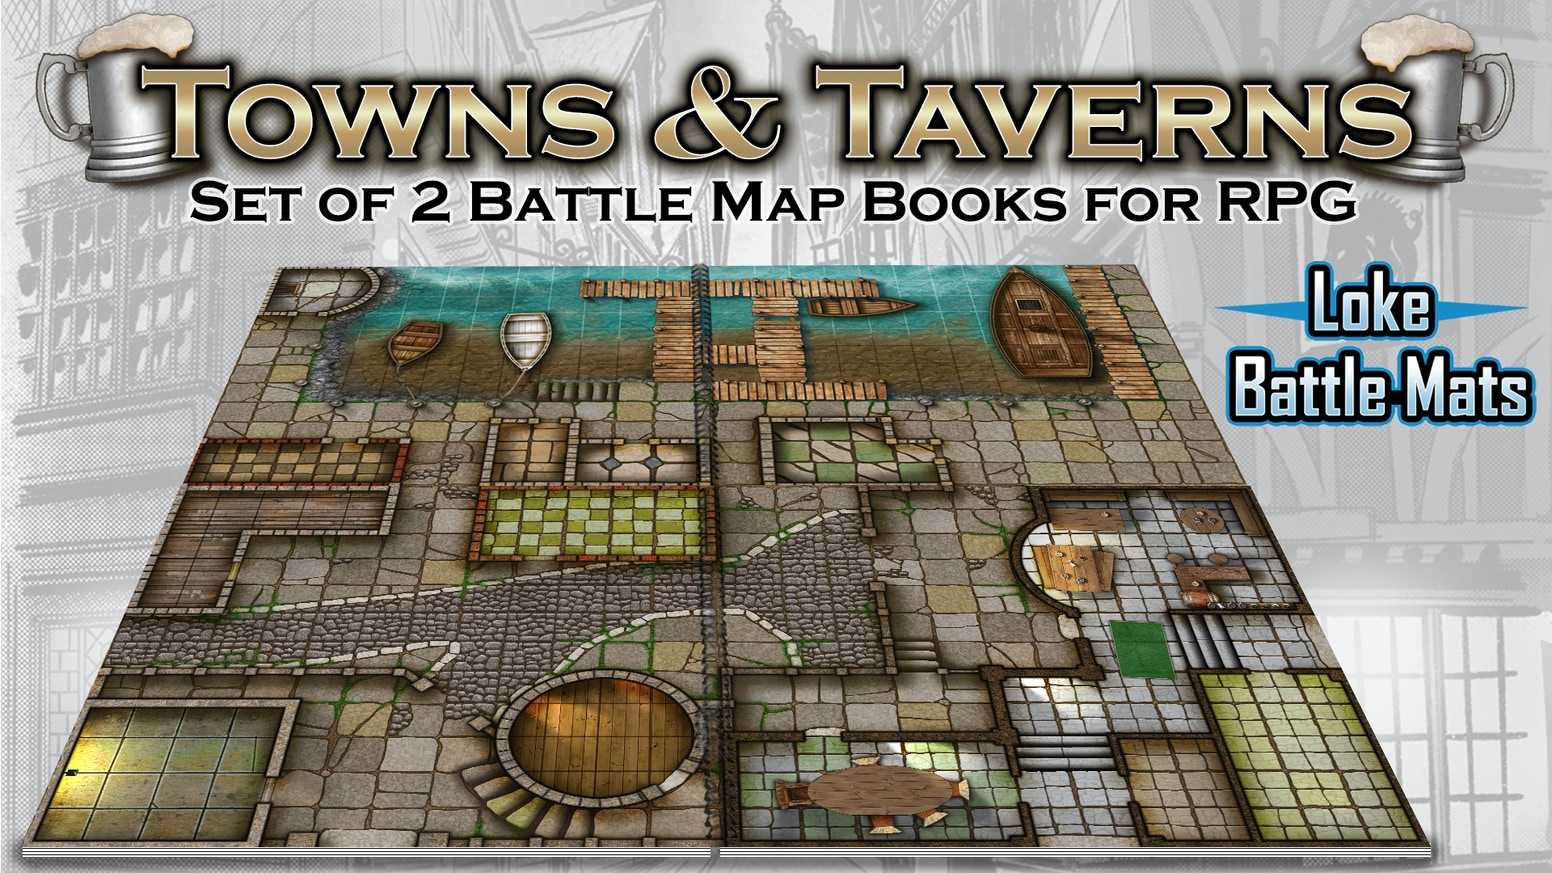 Attention Adventurers! Encounter 2 adaptive battle map books for tabletop roleplay which align to create 1 epic evolving urban map.